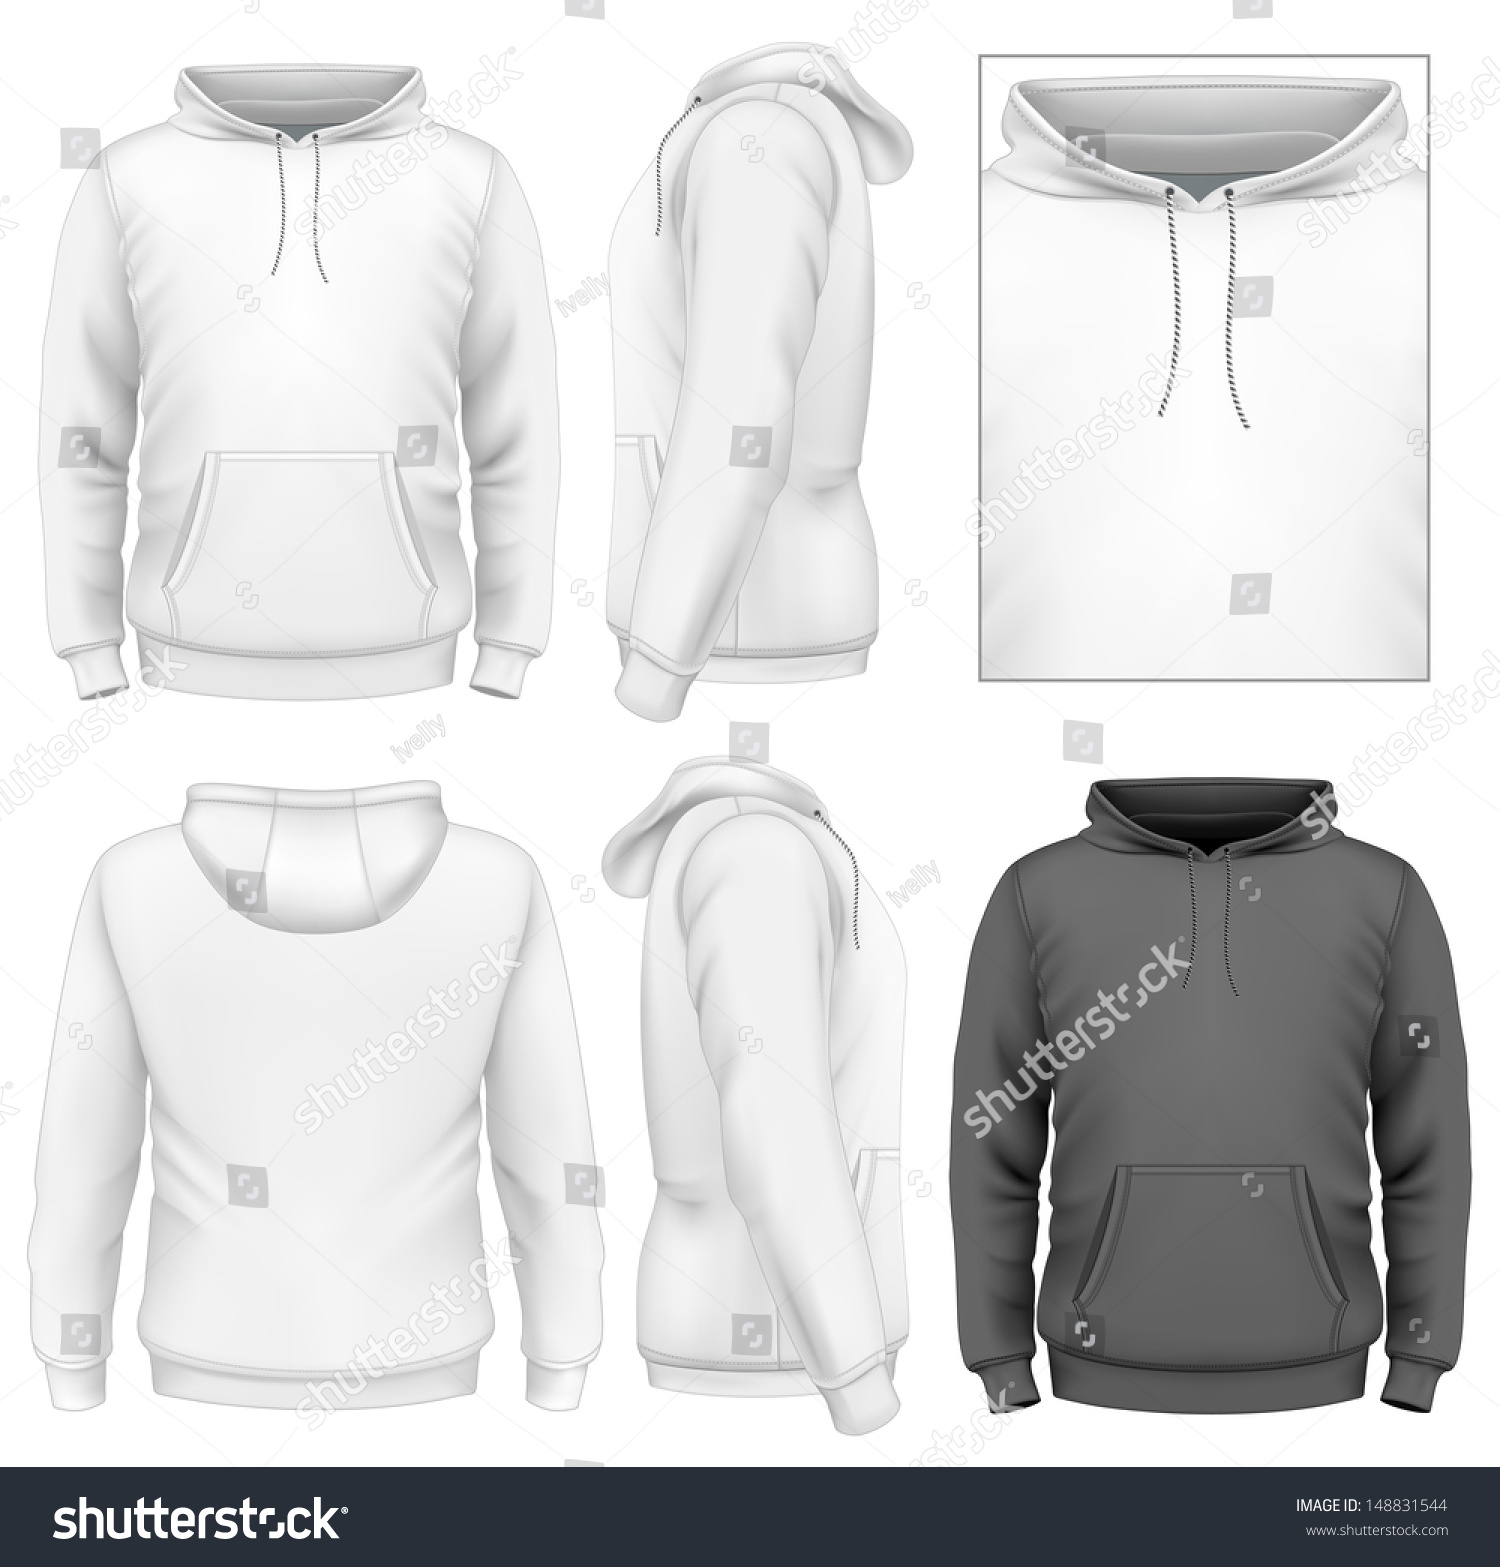 Shirt hoodie design - Photo Realistic Vector Illustration Men S Hoodie Design Template Front View Back And